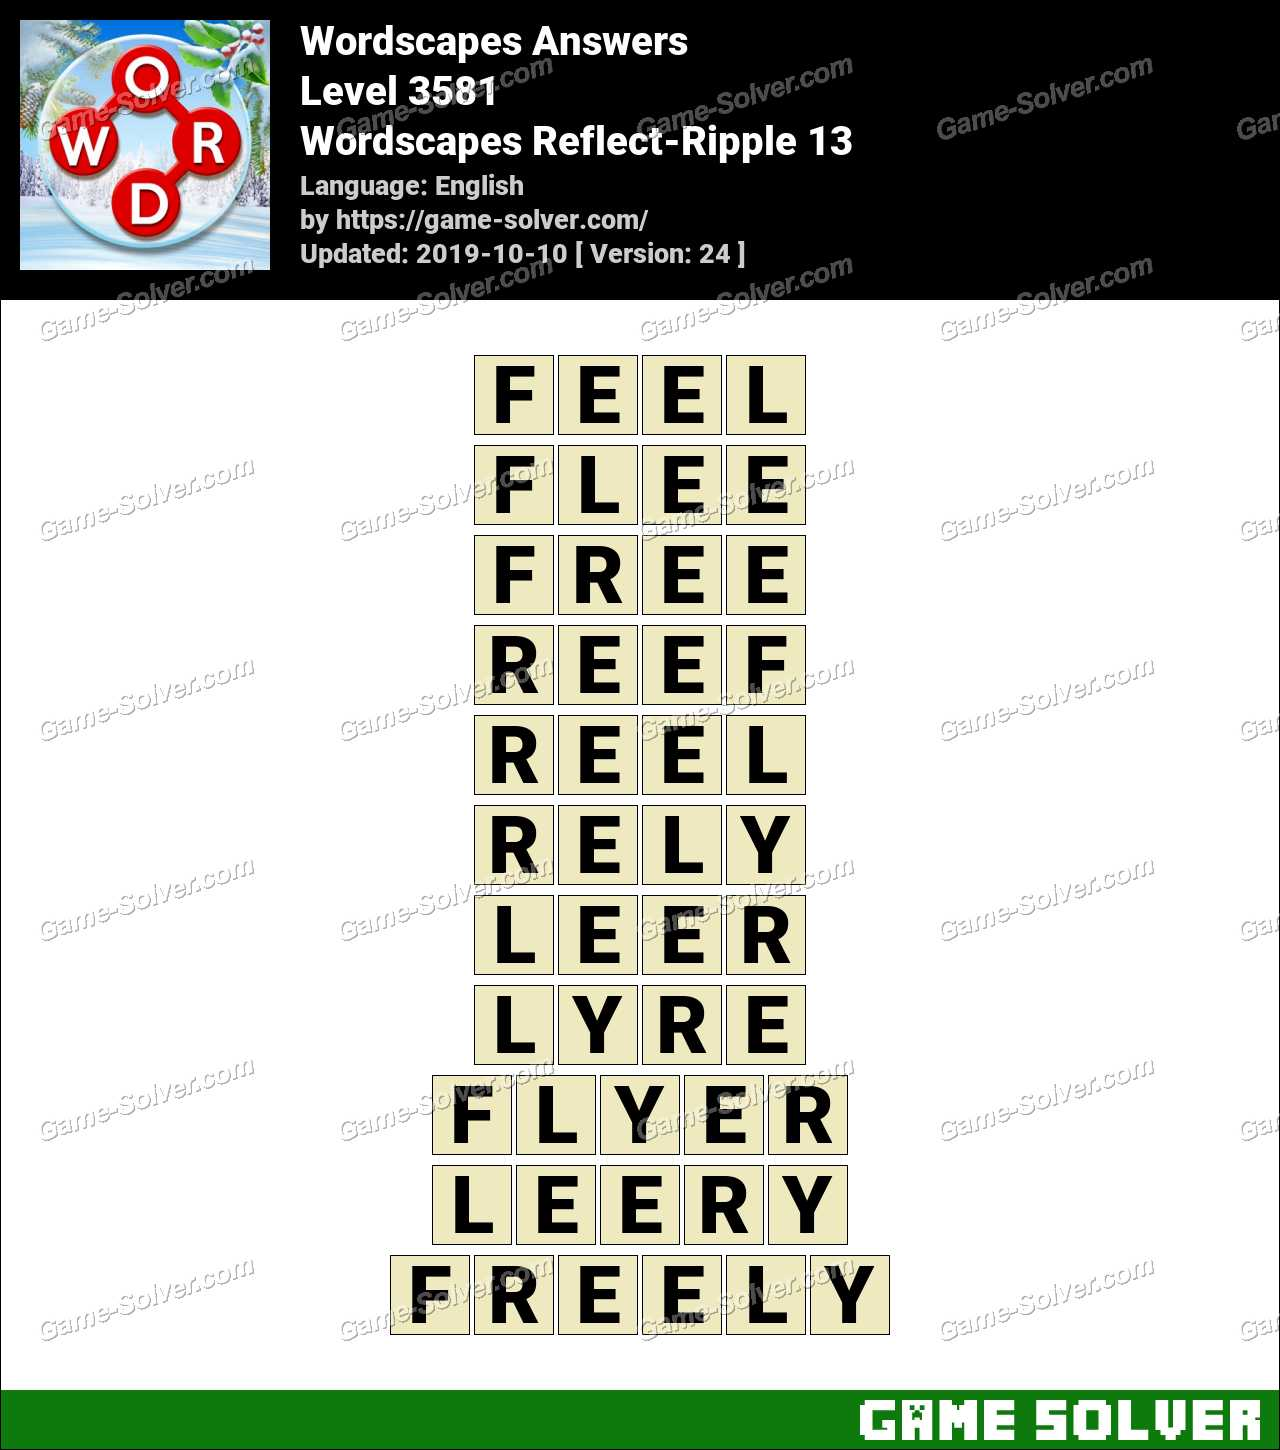 Wordscapes Reflect-Ripple 13 Answers